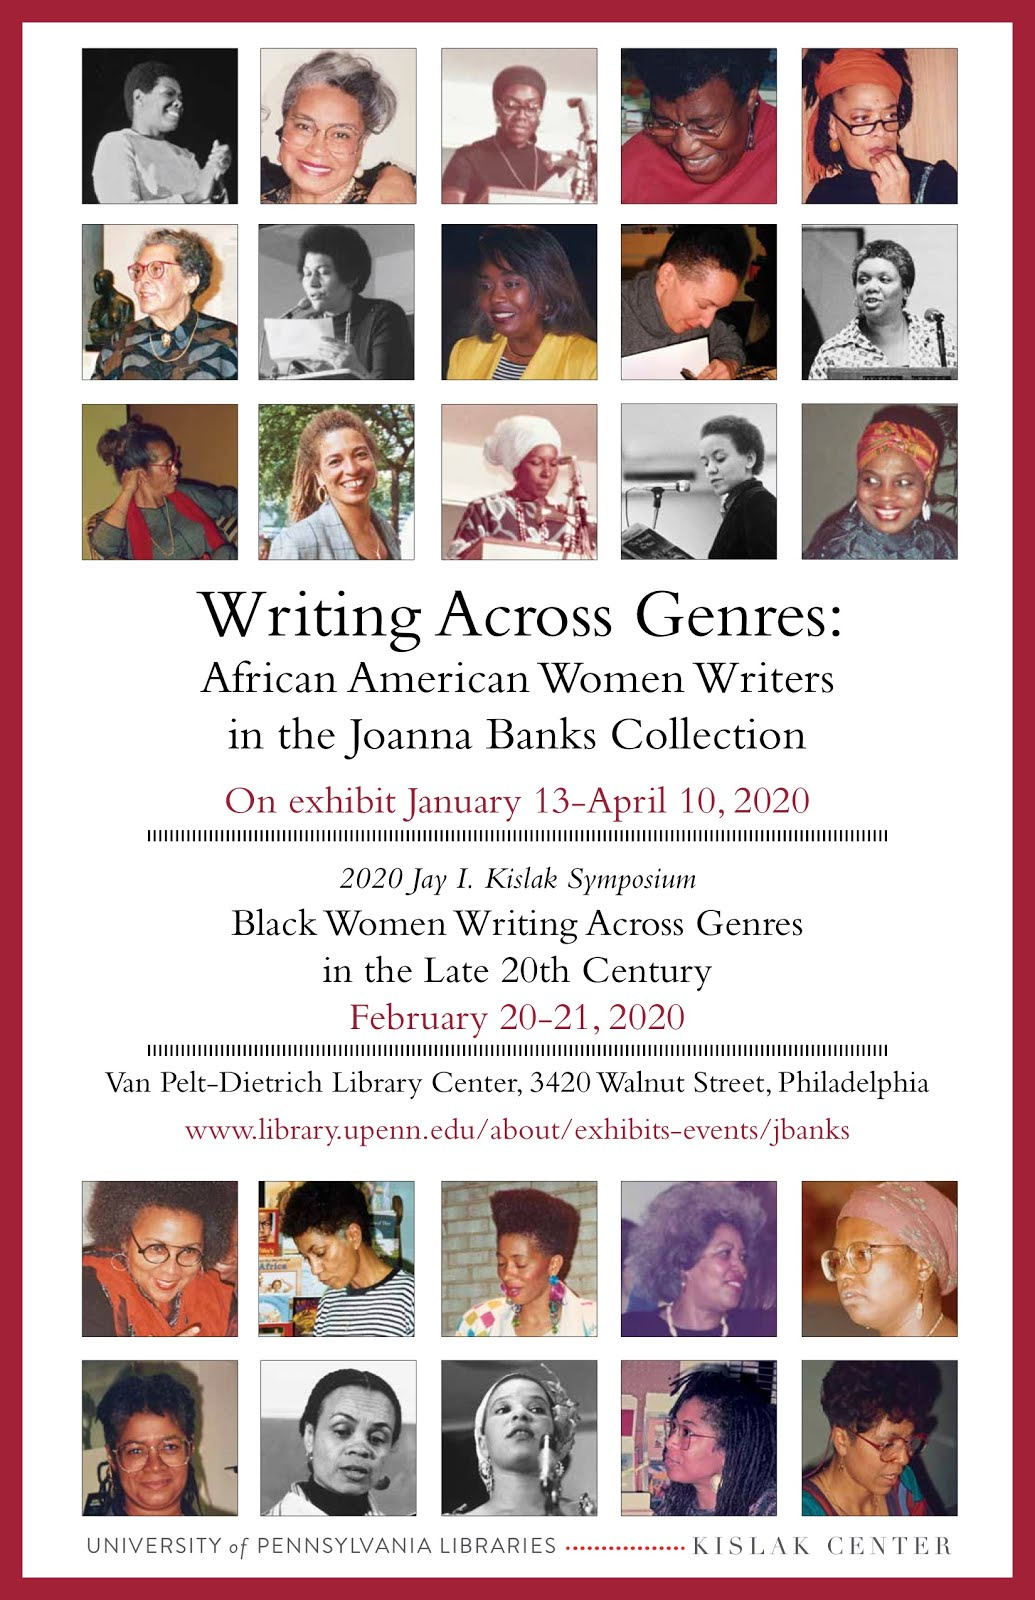 Feb. 20-21, 2020 -Black Women Writing Across Genres in the Late 20th Century